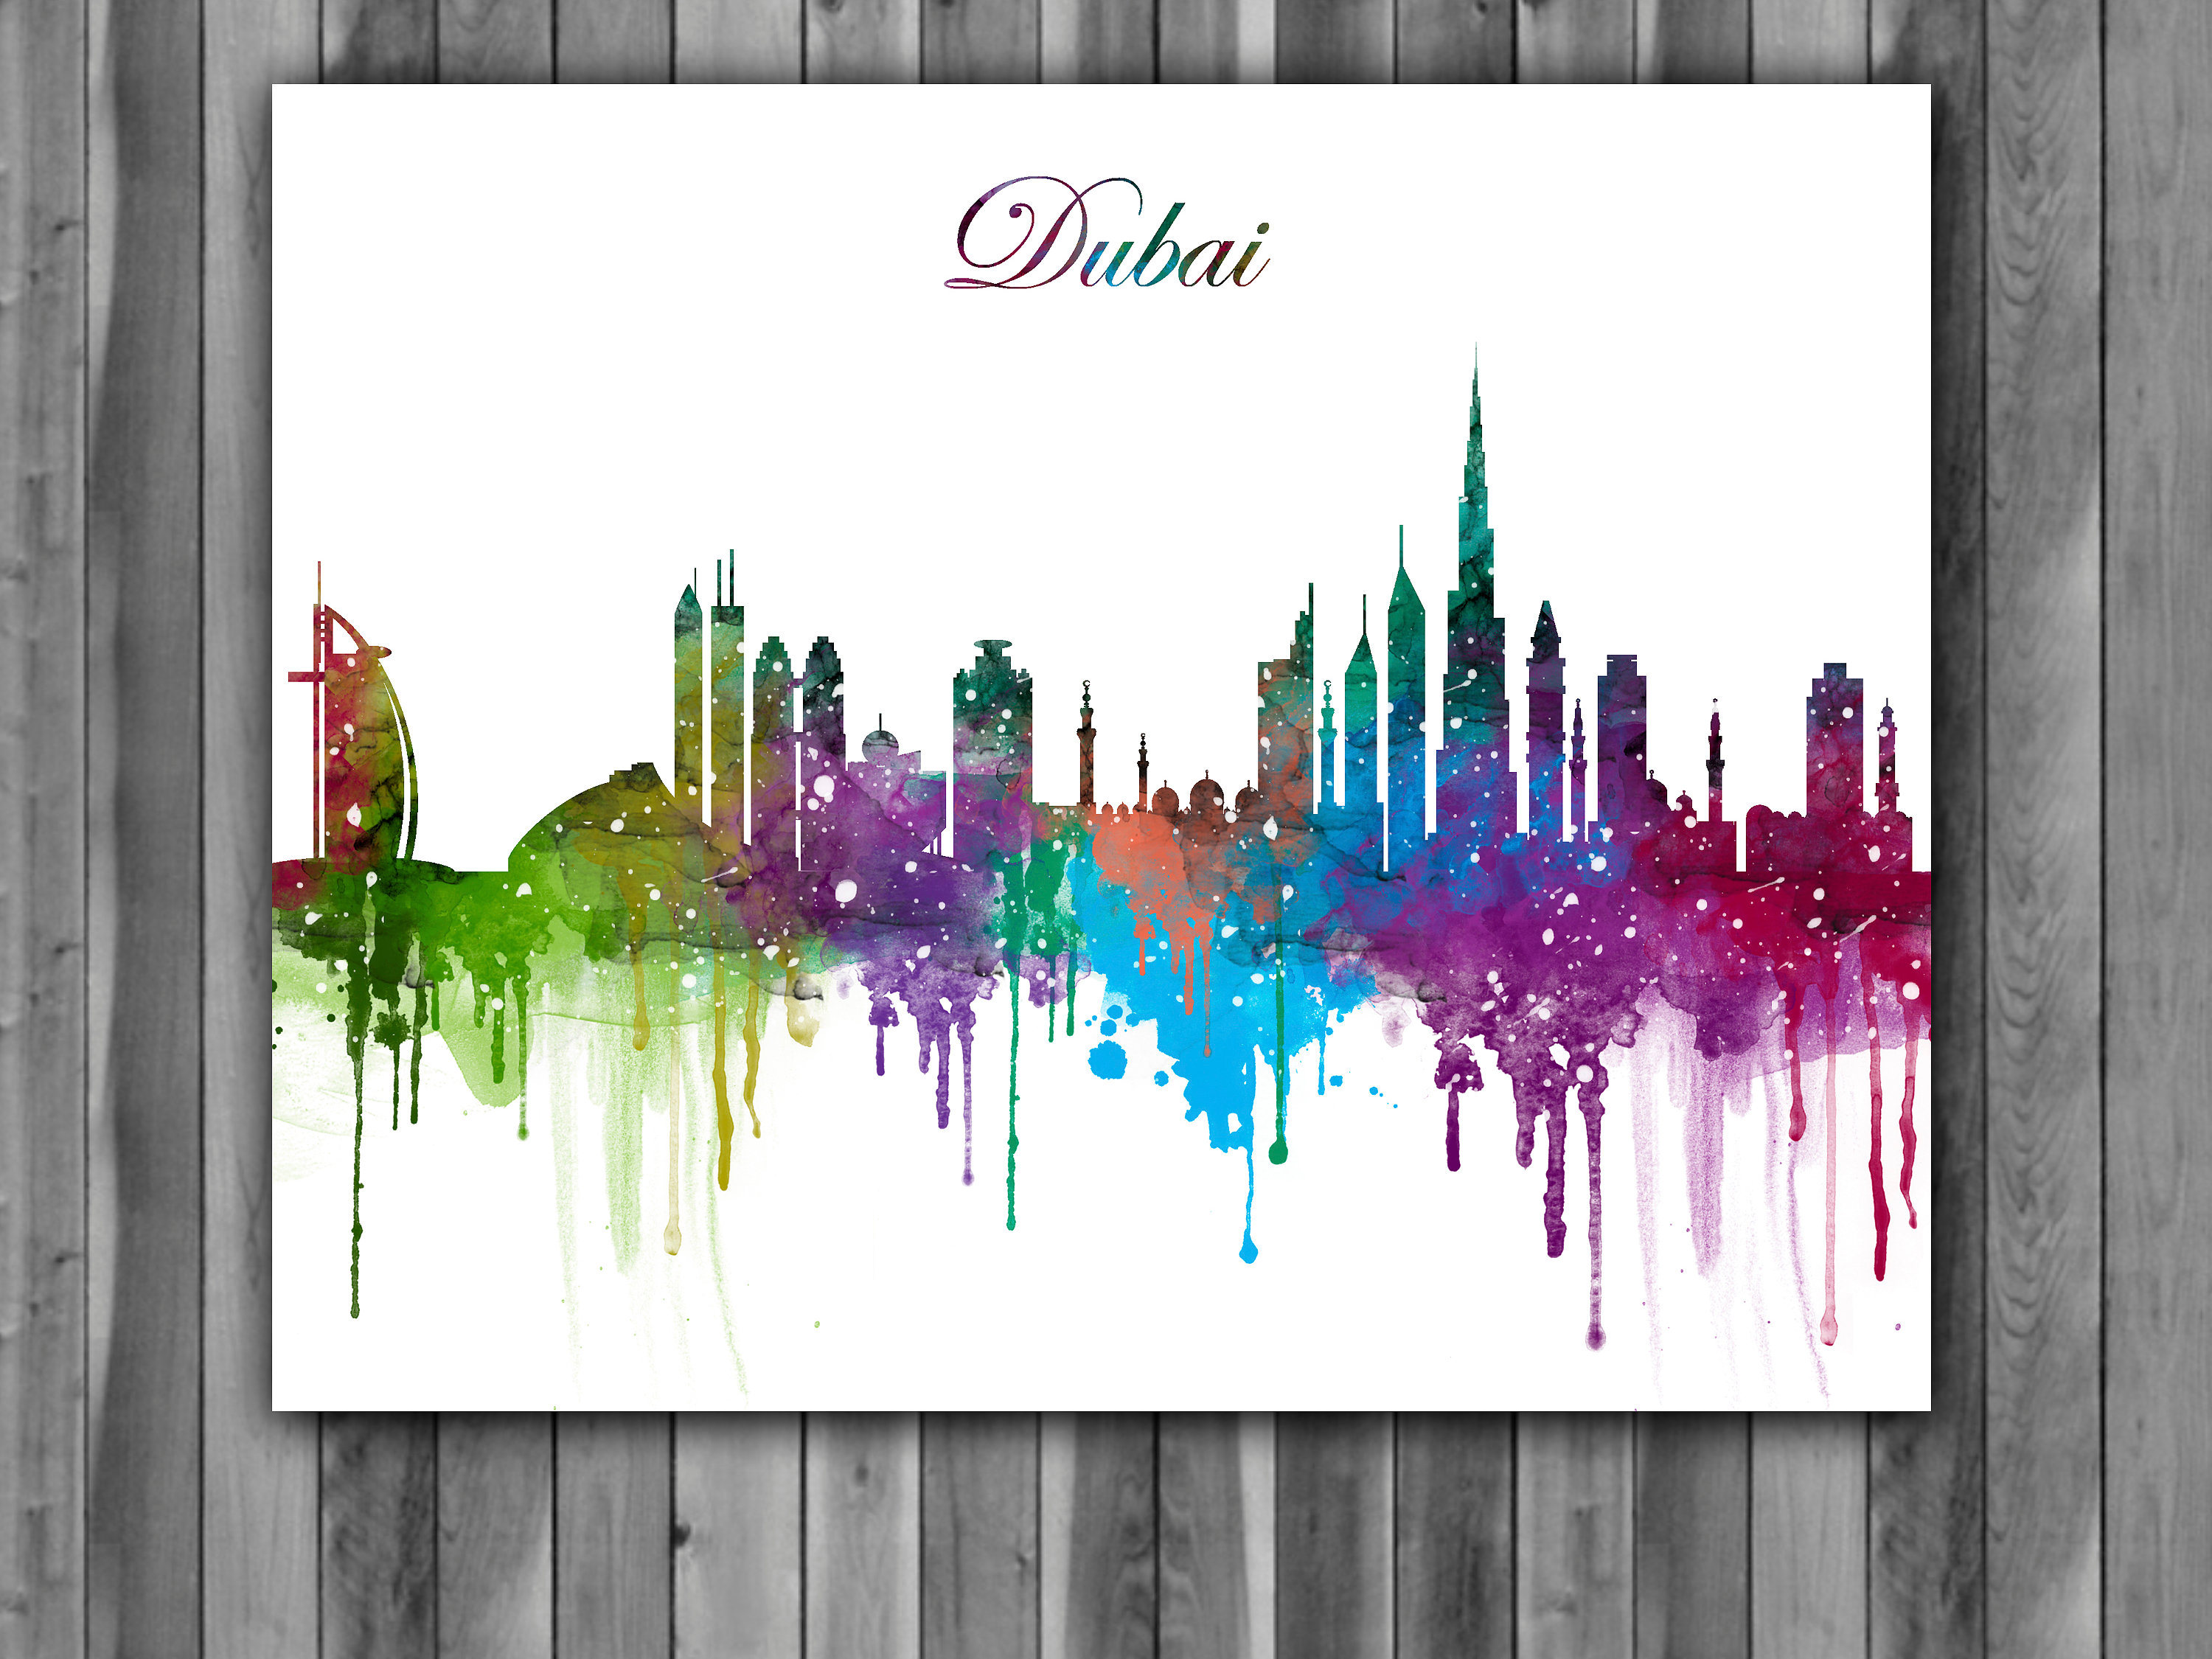 3000x2250 Dubai Skyline Watercolor Print, Dubai Skyline Art, Dubai Skyline